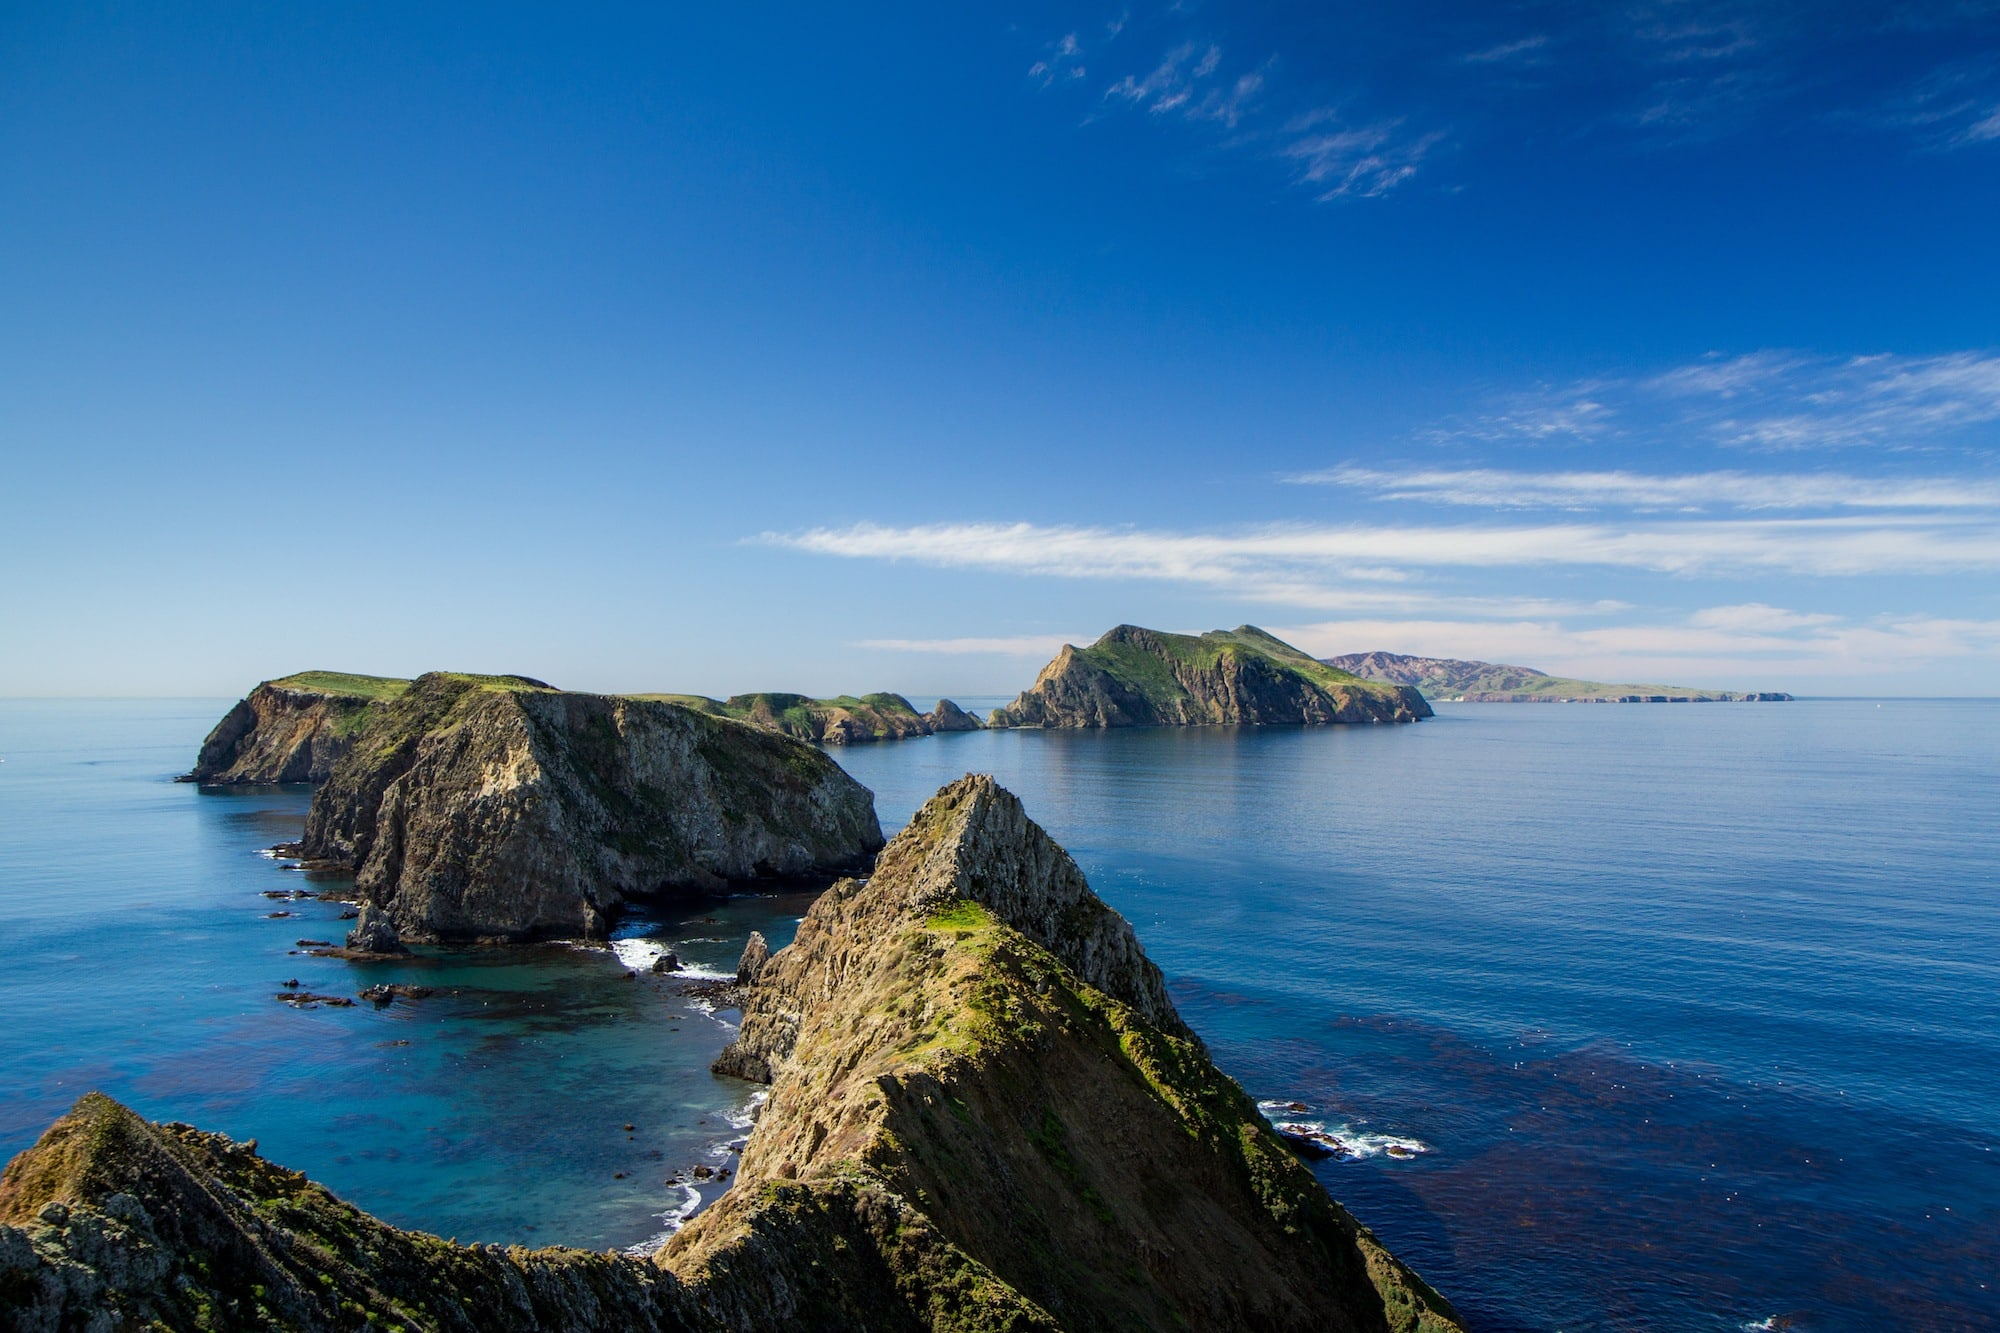 Inspiration Point at Anacapa Island // Get the scoop on camping, hiking, marine life & outdoor adventure in this outdoor enthusiasts guide to the five islands of Channel Islands National Park.